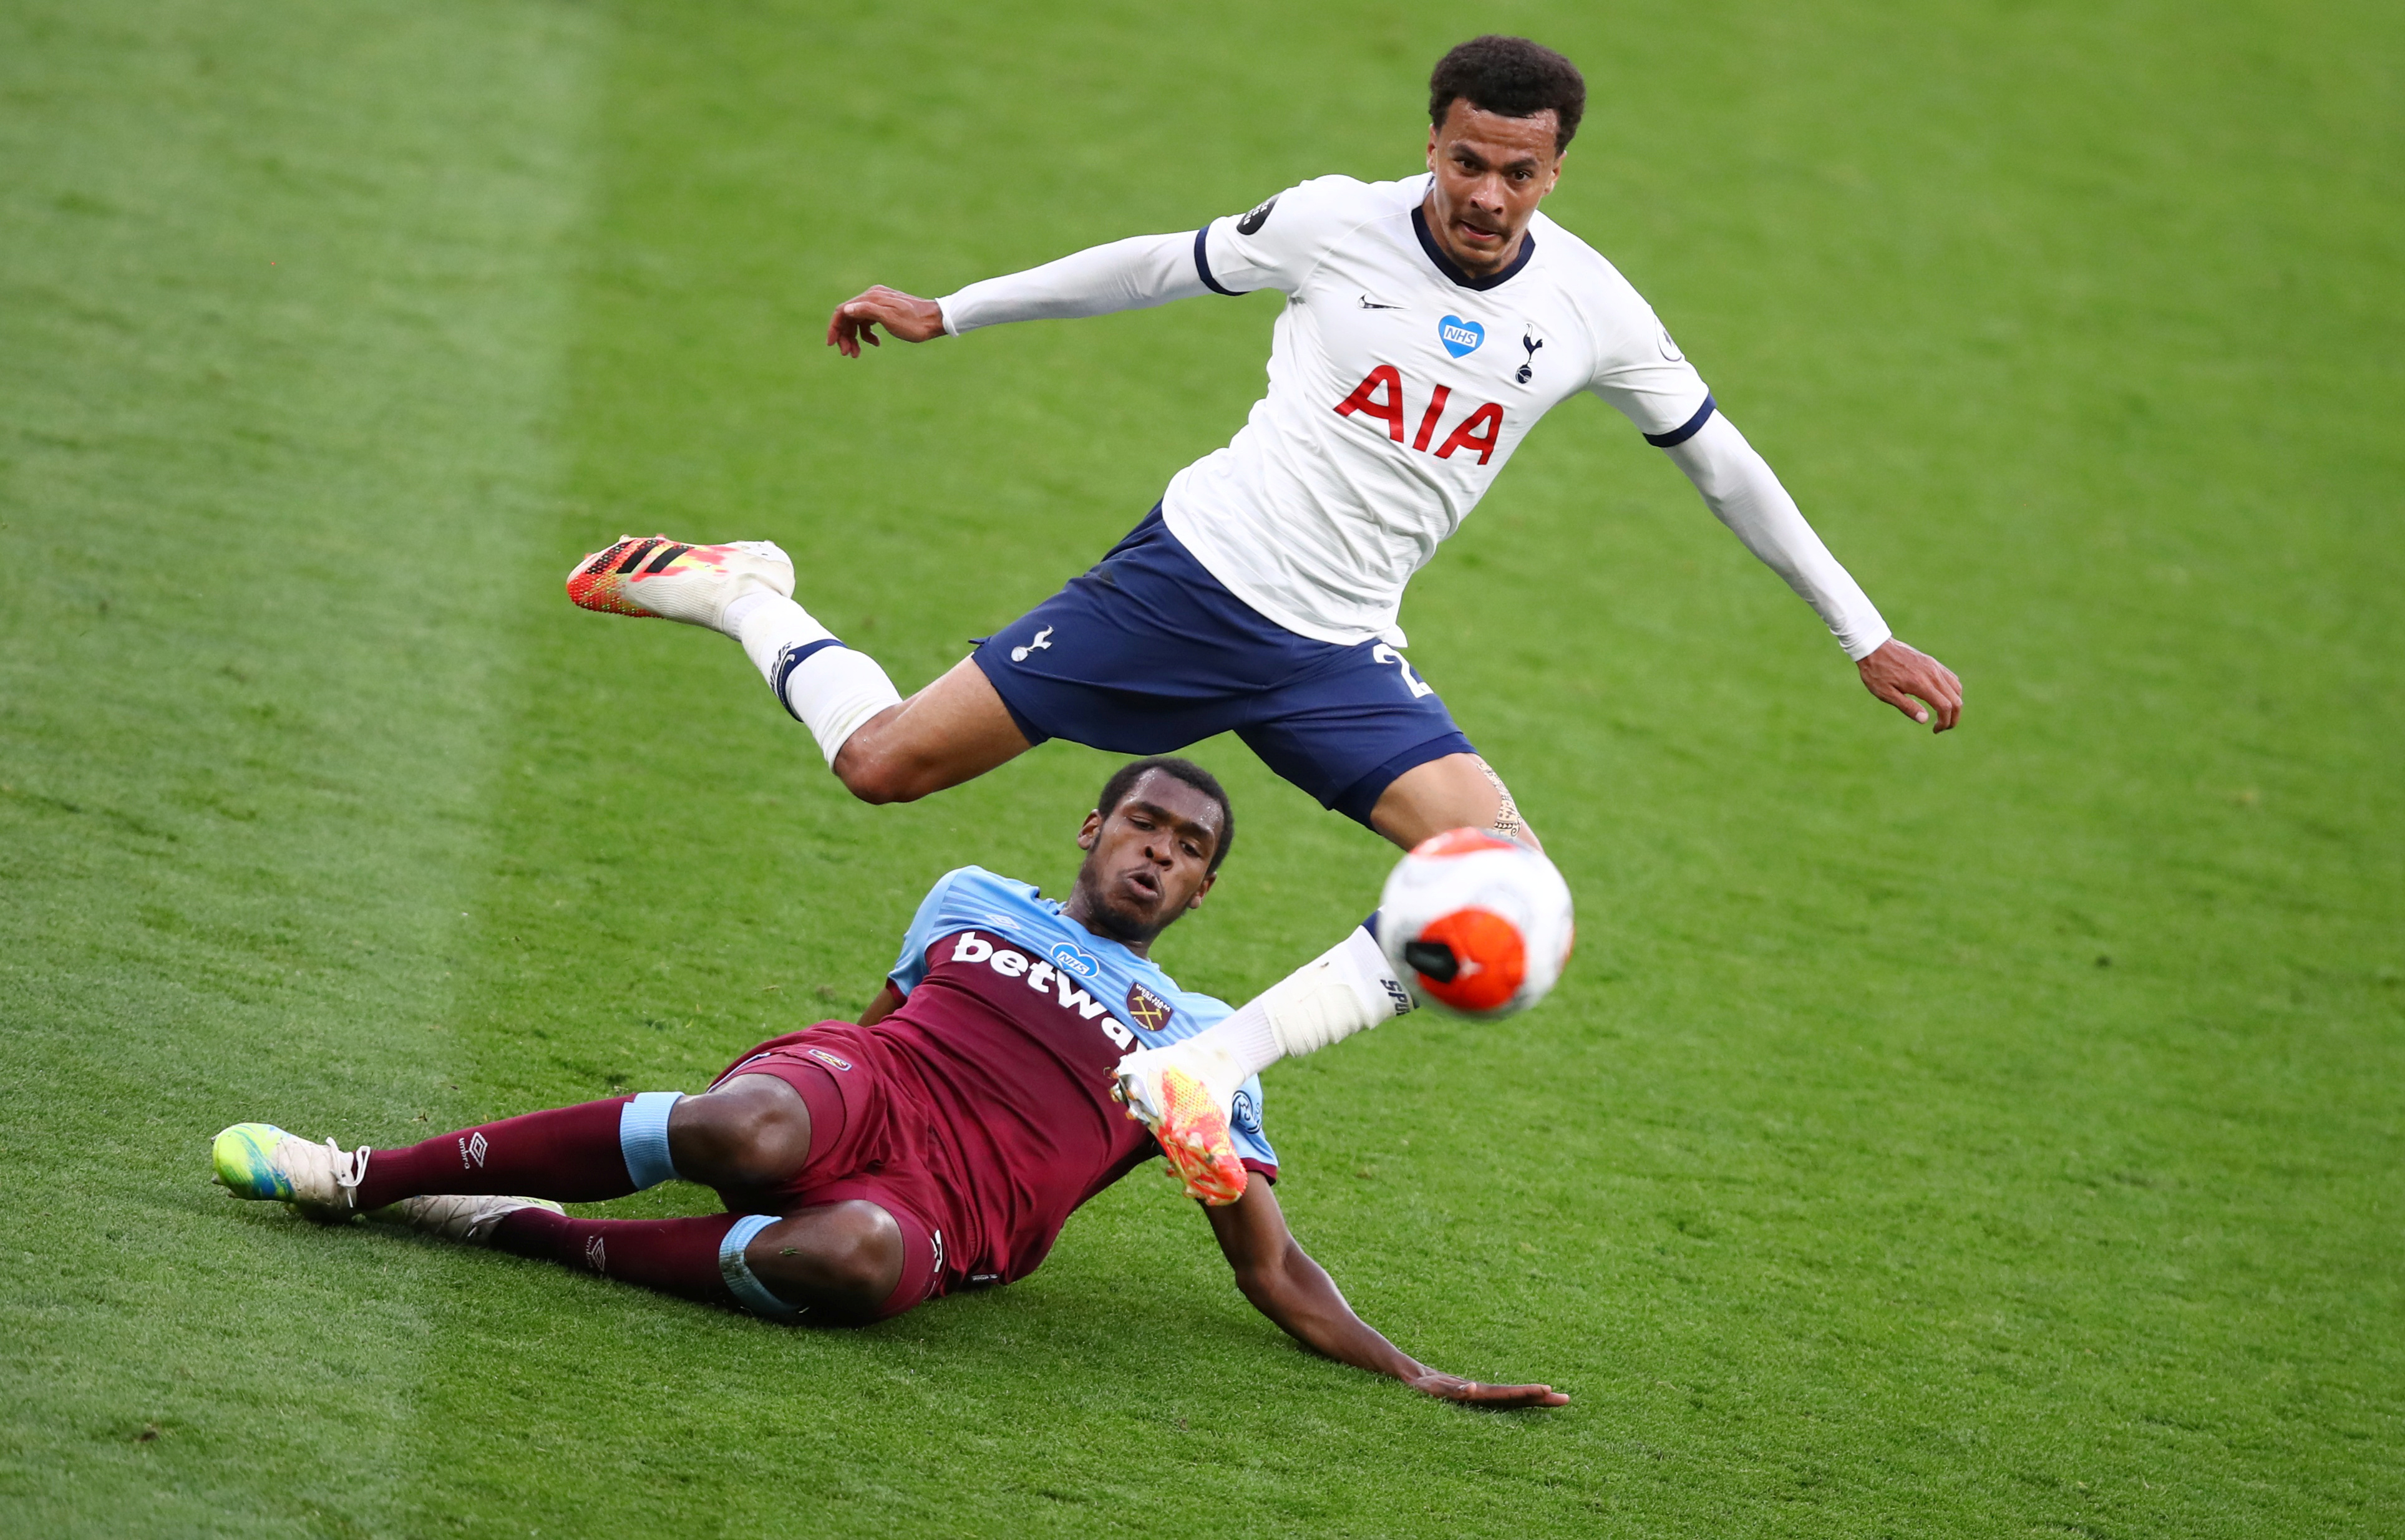 West Ham United's Issa Diop in action with Tottenham Hotspur's Dele Alli, as play resumes behind closed doors following the outbreak of the coronavirus disease (COVID-19) during the Premier League match between Tottenham Hotspur and West Ham United, at Tottenham Hotspur Stadium, in London, Britain, on June 23, 2020. Photo: Julian Finney/Pool via Reuters